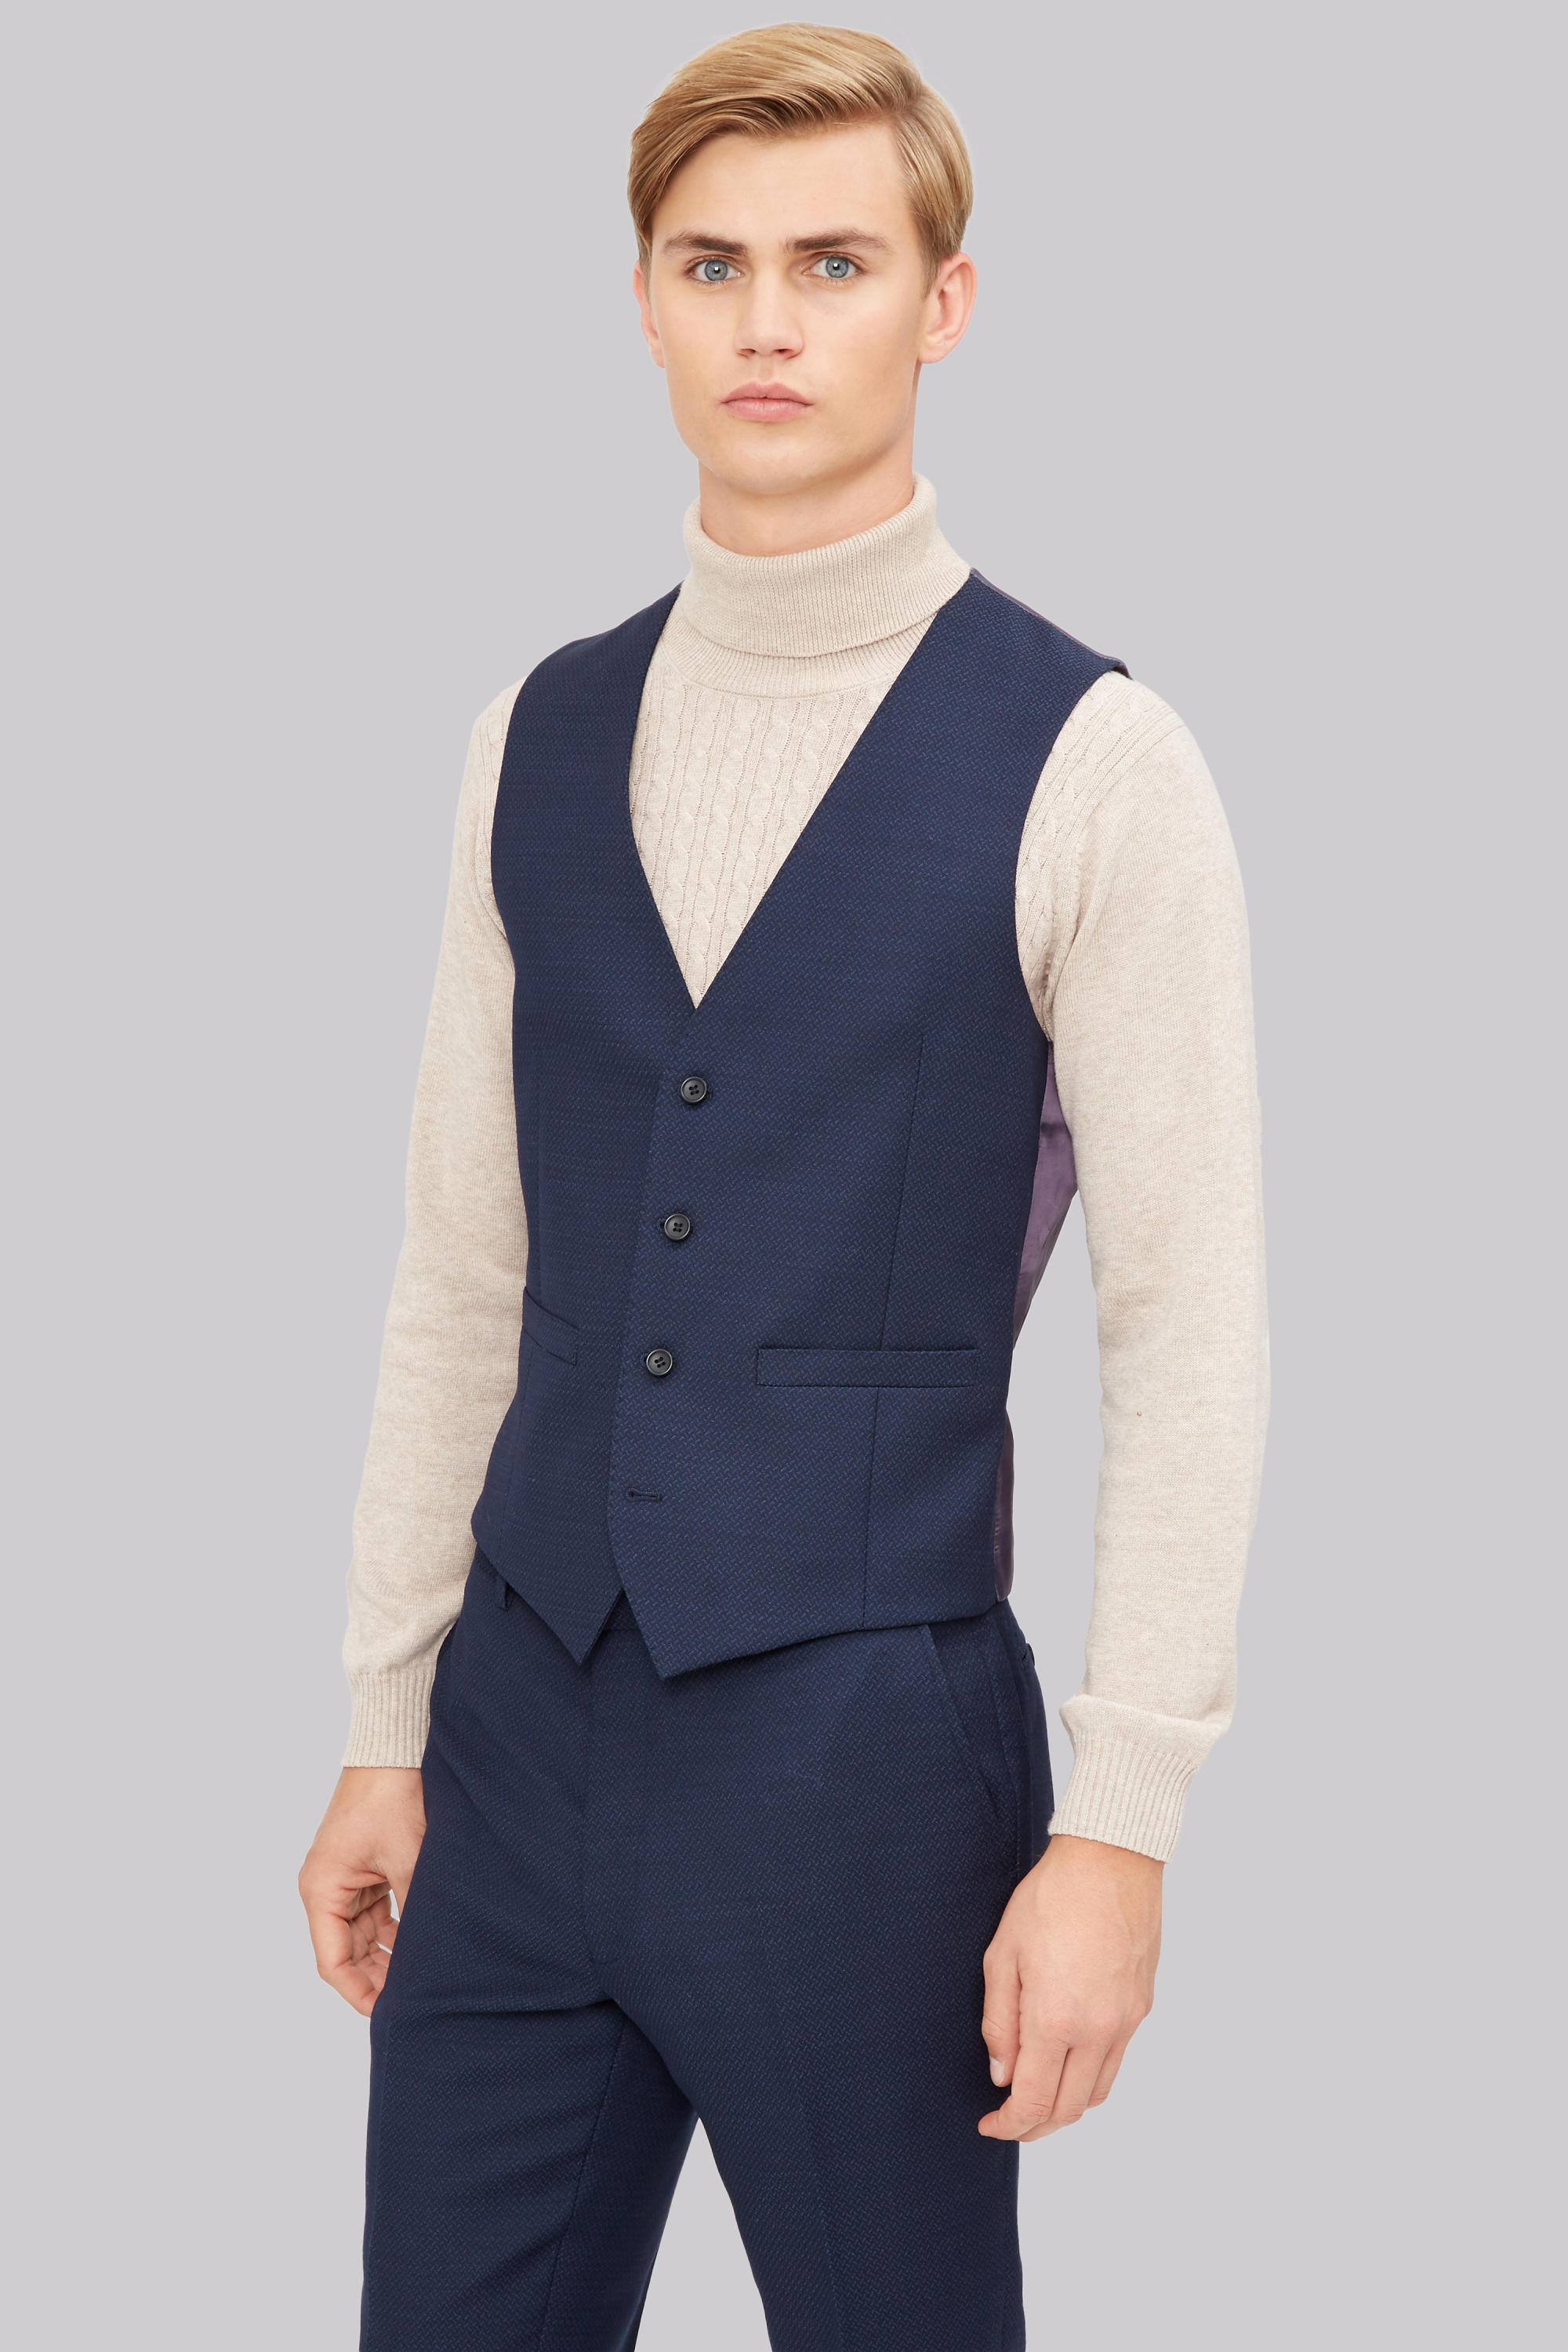 french connection slim fit navy jacquard waistcoat